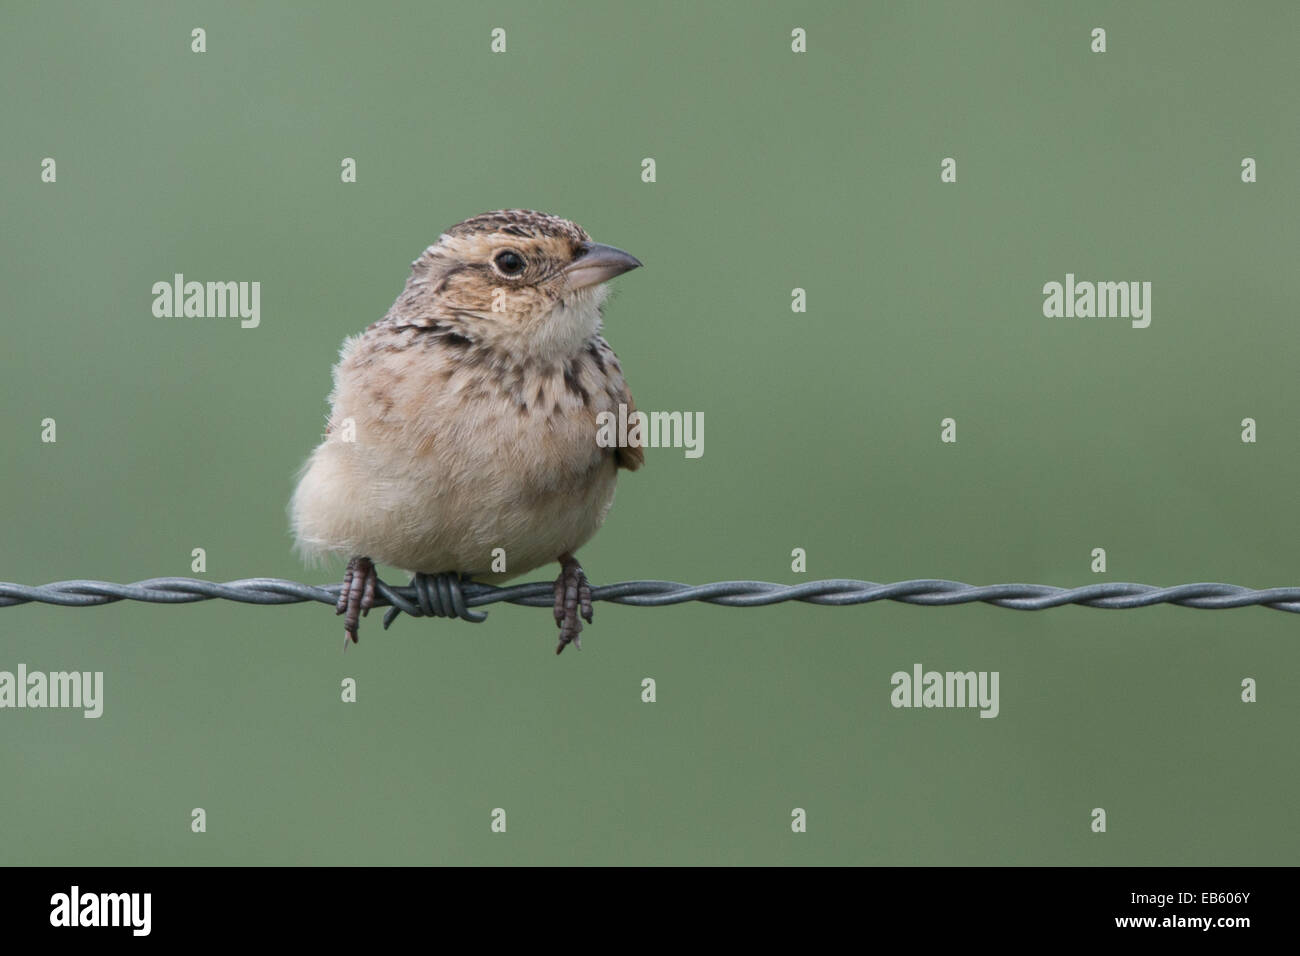 Singing Bushlark (Mirafra javanica) perched on a barbed wire - Stock Image